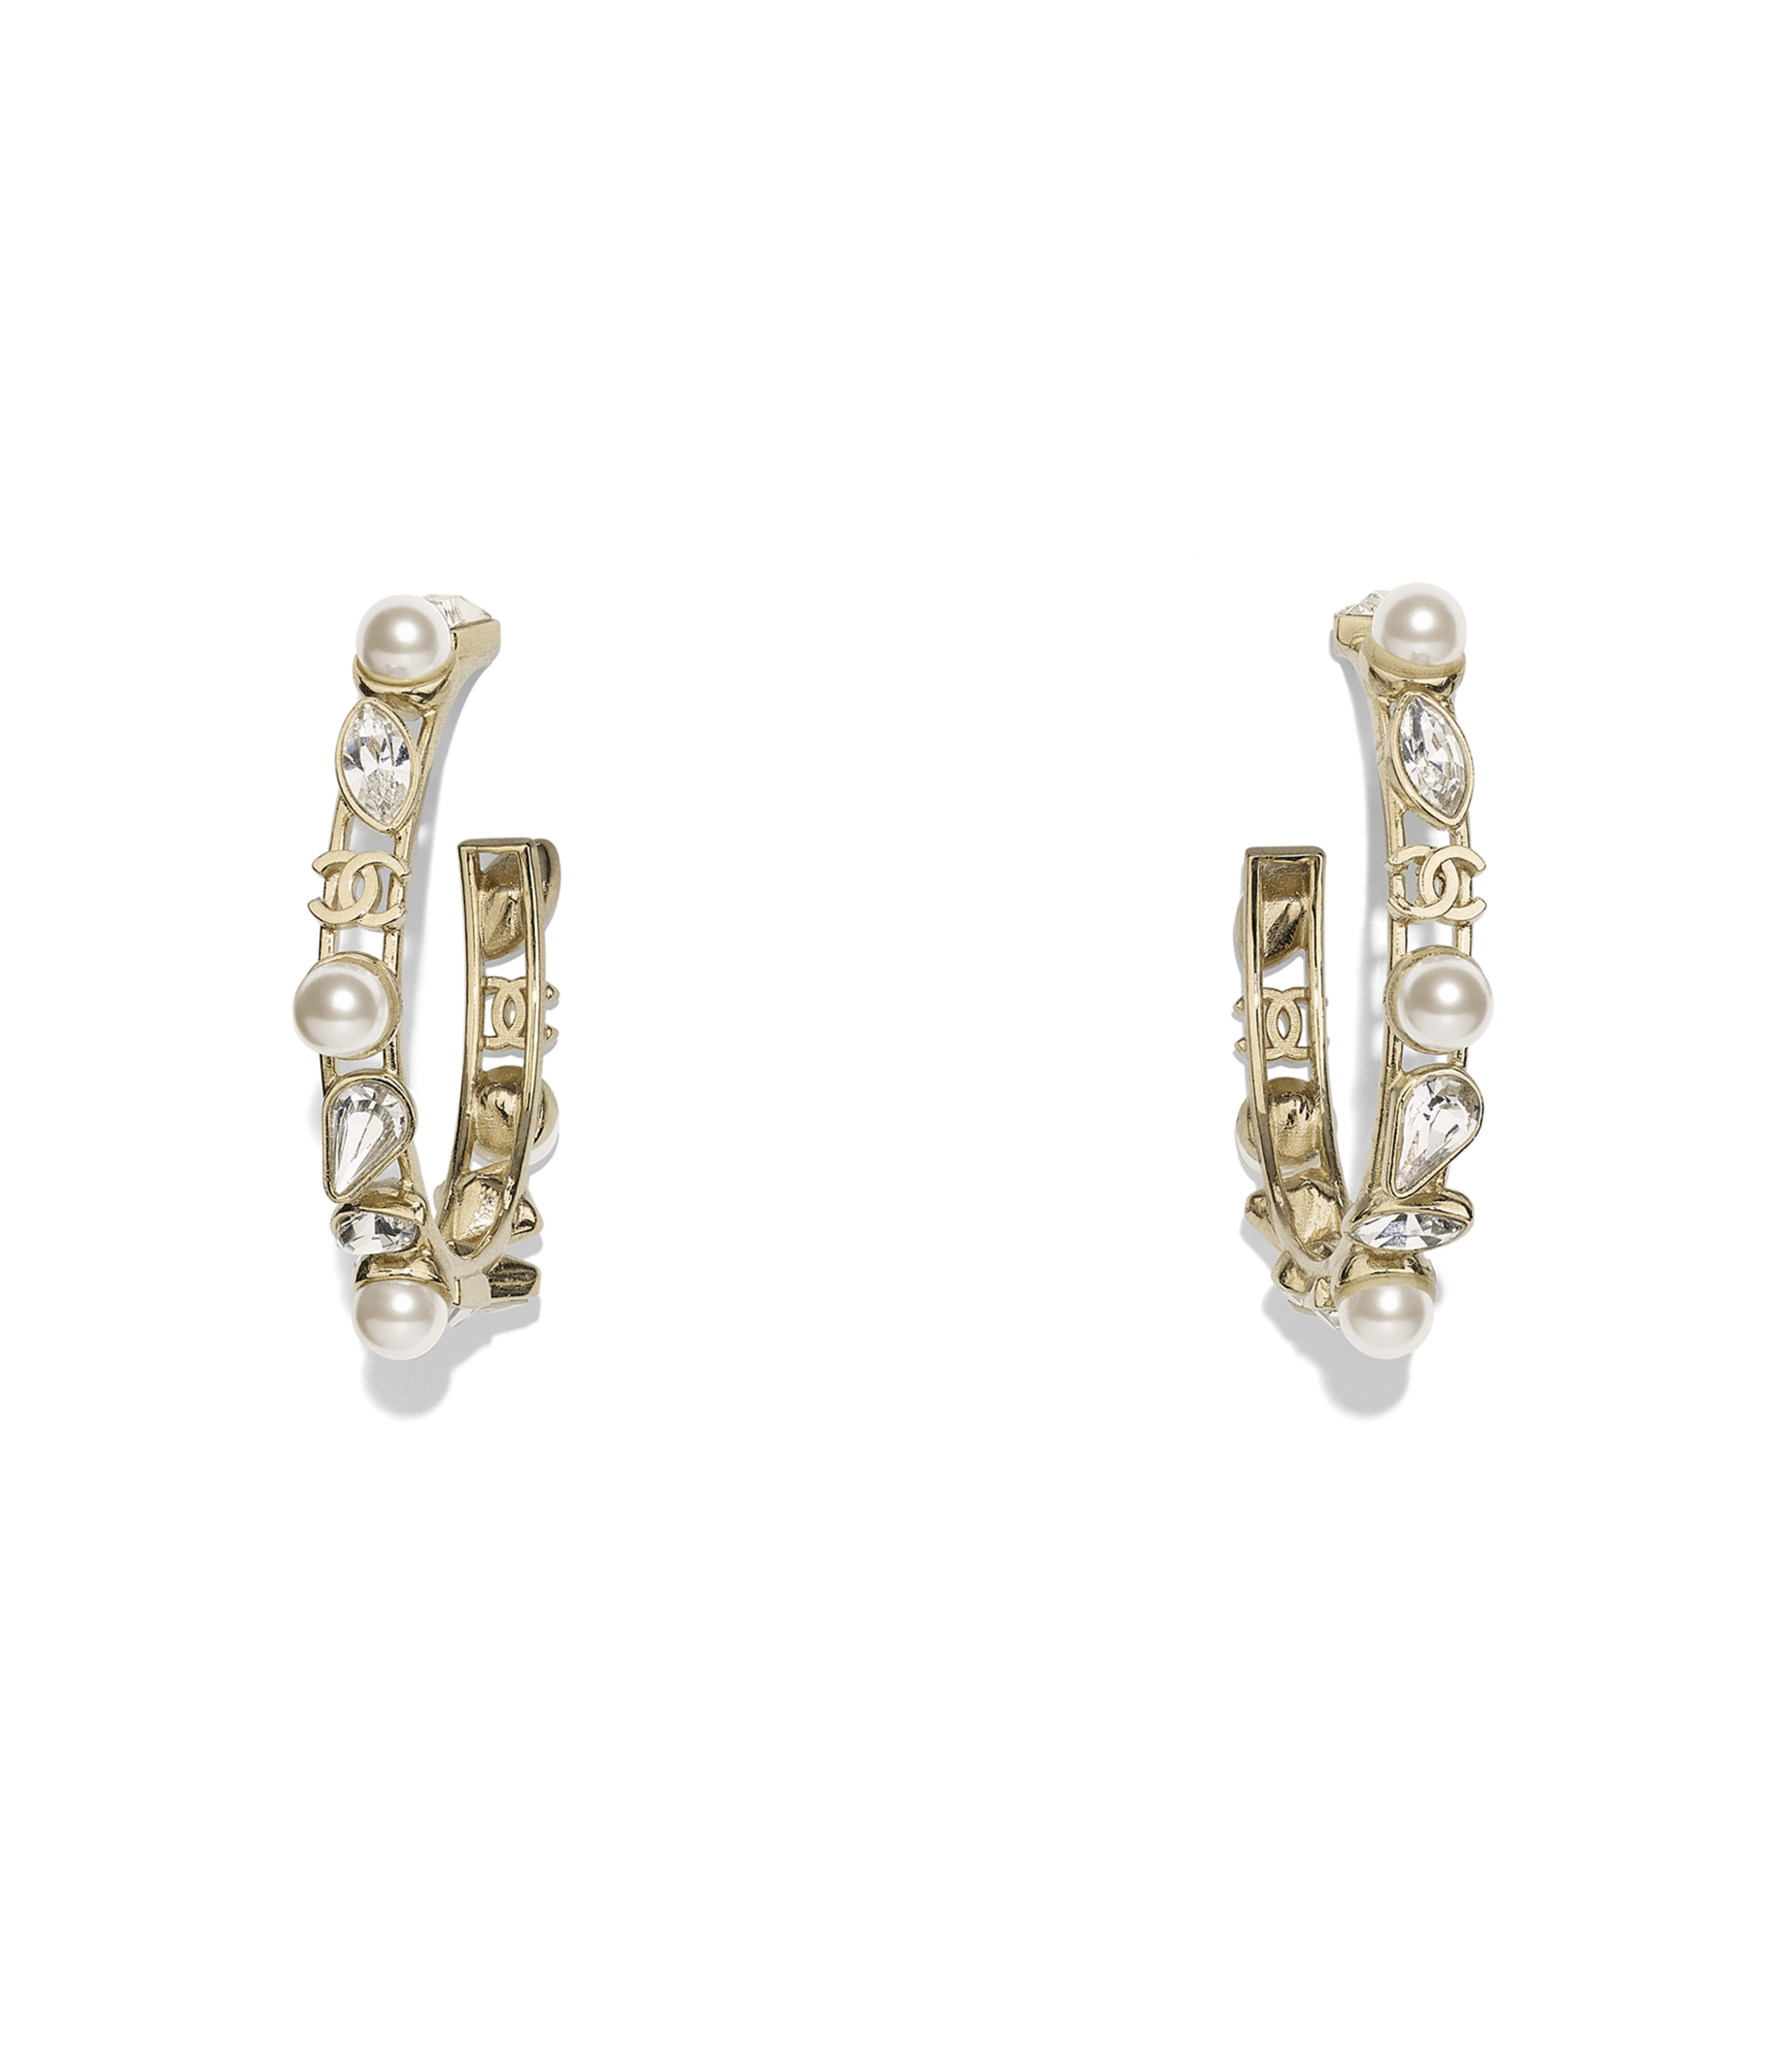 Earrings Costume Jewelry Chanel Page 2 3